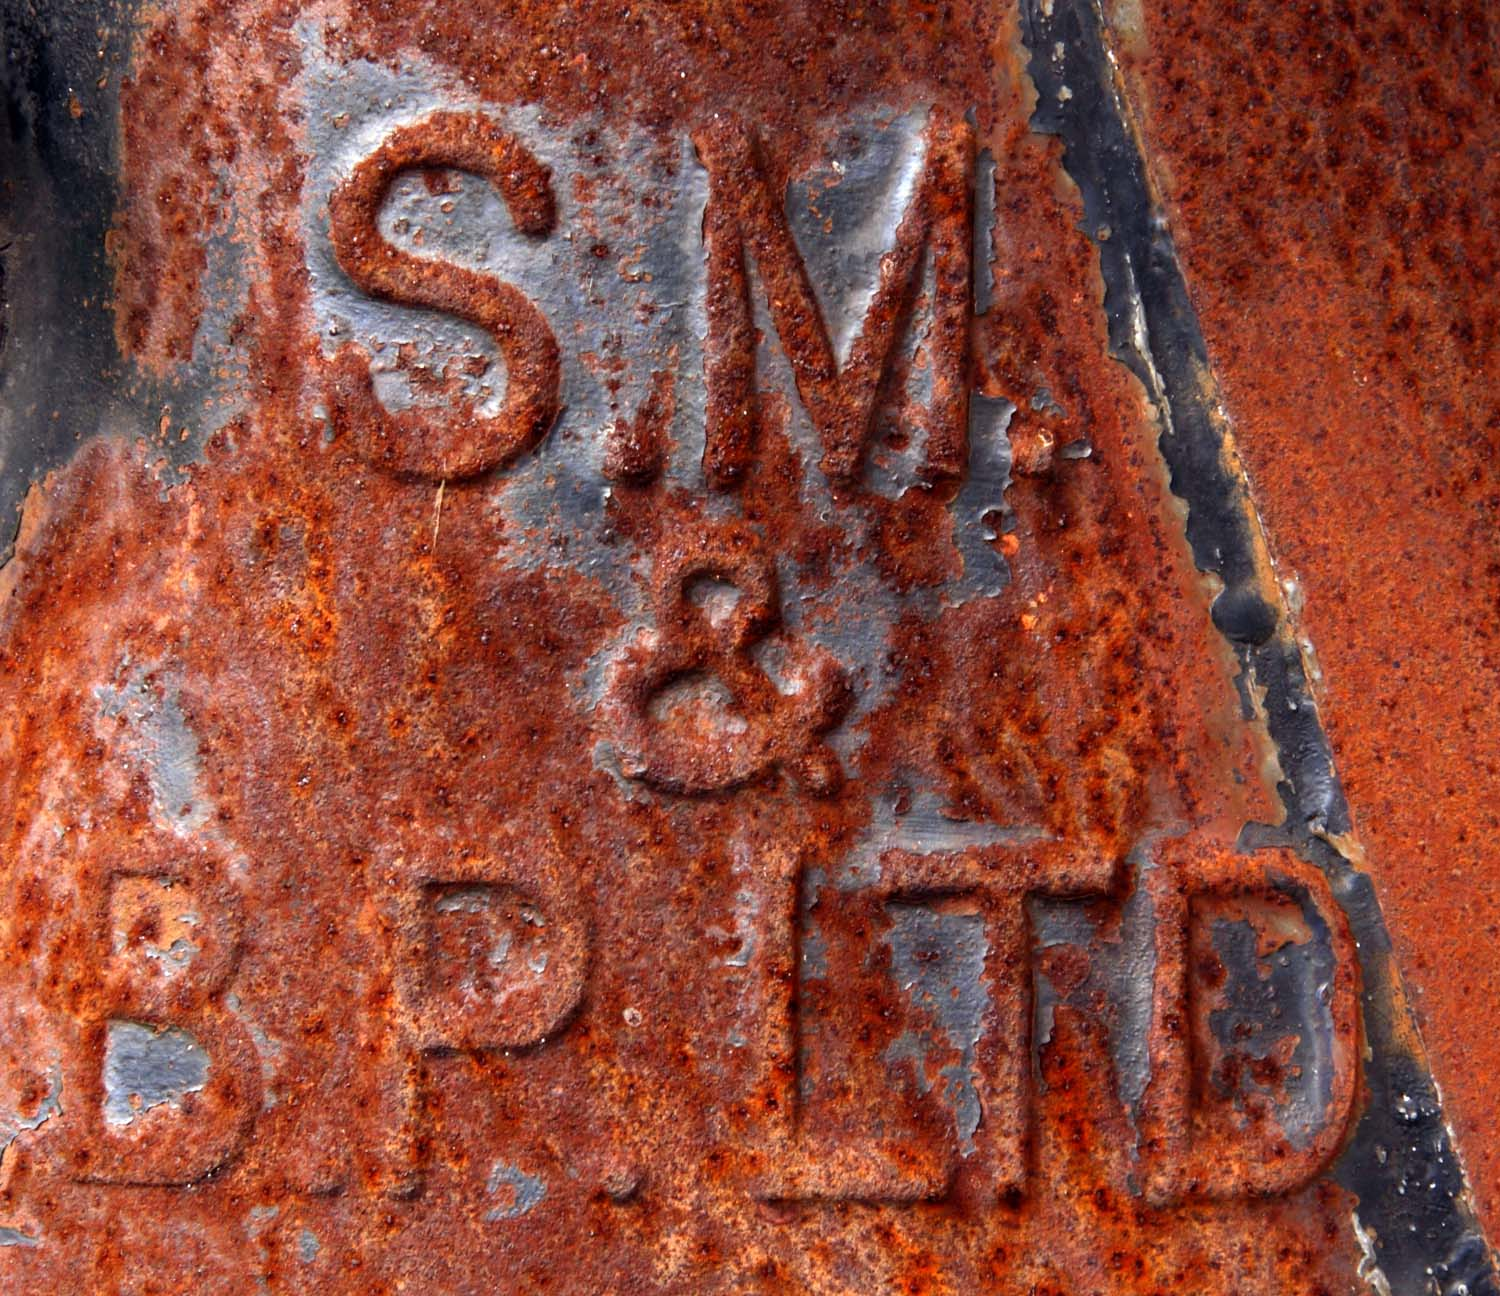 Shell Mex,SM BP SMBP Ltd,Milk,Churn,old,antique,SM,BP,SMBP,Ltd,SMBPLTD,oil,can,container,rusting,rust,steel,zinc,galvanised,red,365days,www.thewdcc.org.uk,thewdcc.org.uk,wdcc.org.uk,Warrington,society,District,Camera,club,photographic,photography,SLR,DSLR,group,GYCA,Bellhouse,bellhouse Club,rot-rosso-rouge-rood,stillife,stilllife,still,life,hotpix!